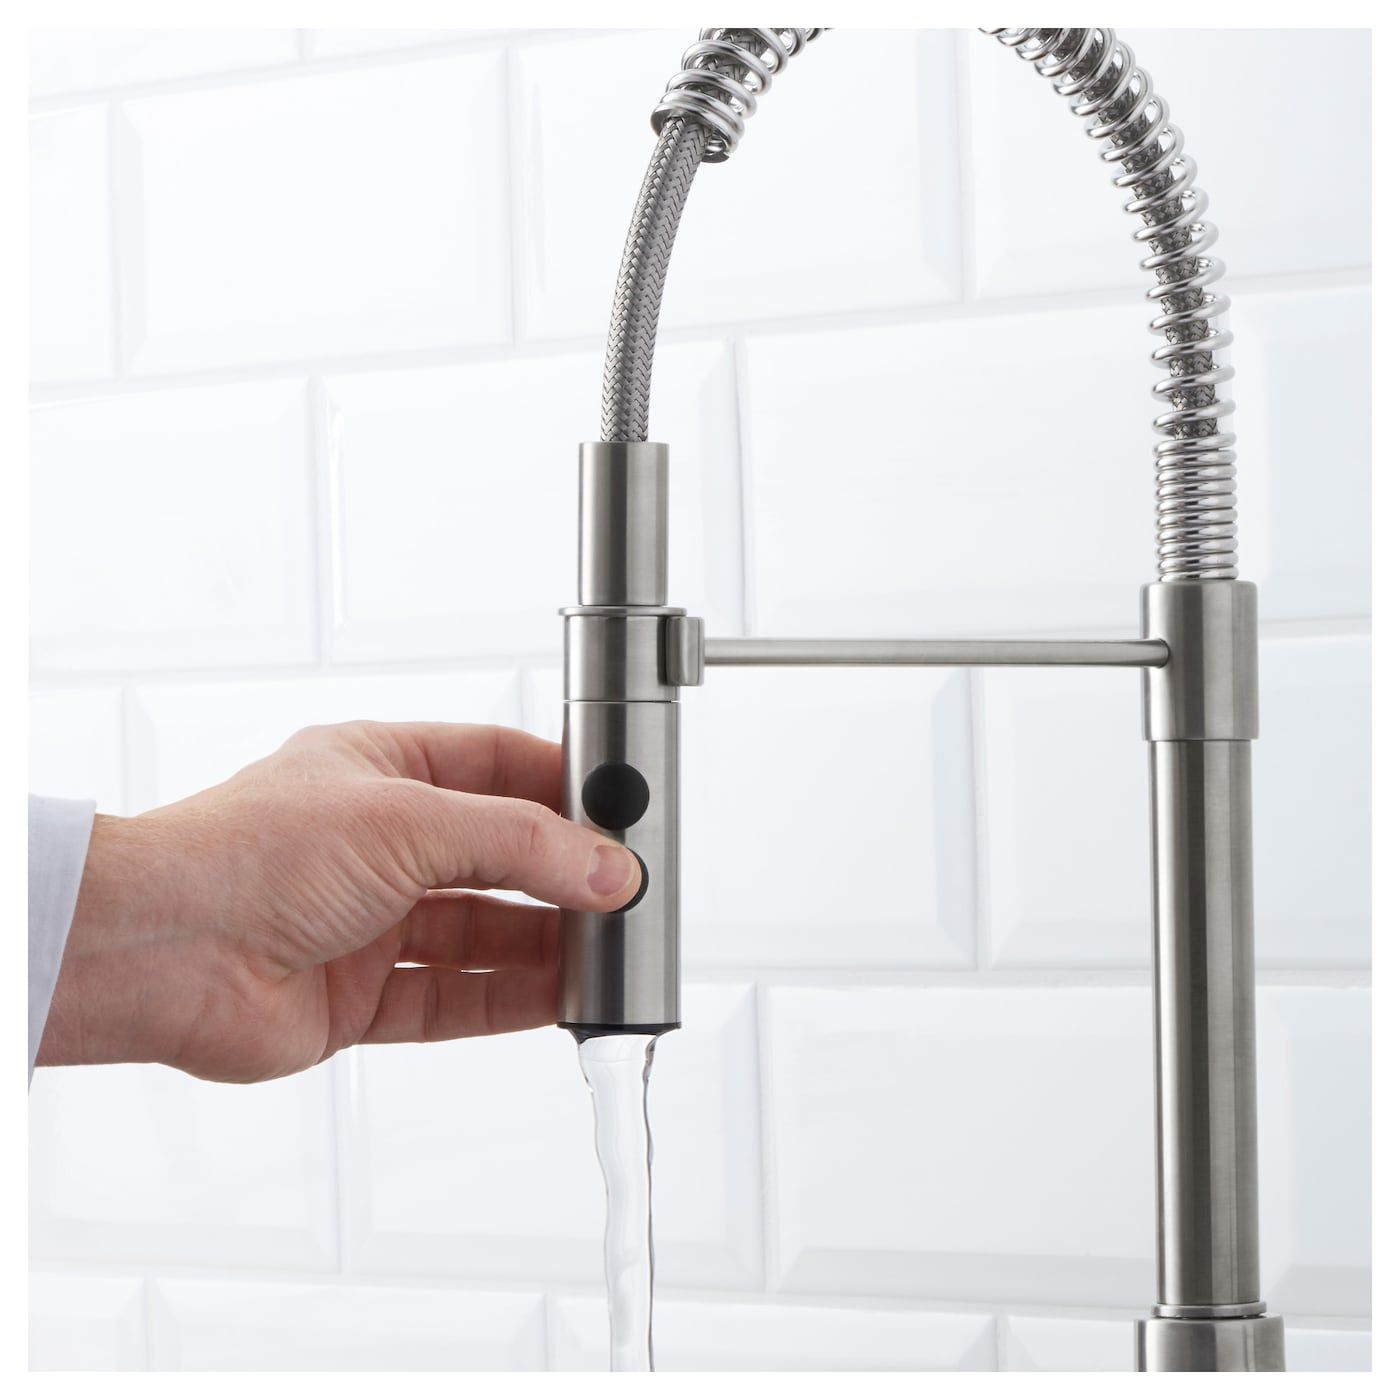 VIMMERN Kitchen faucet with handspray - stainless steel color